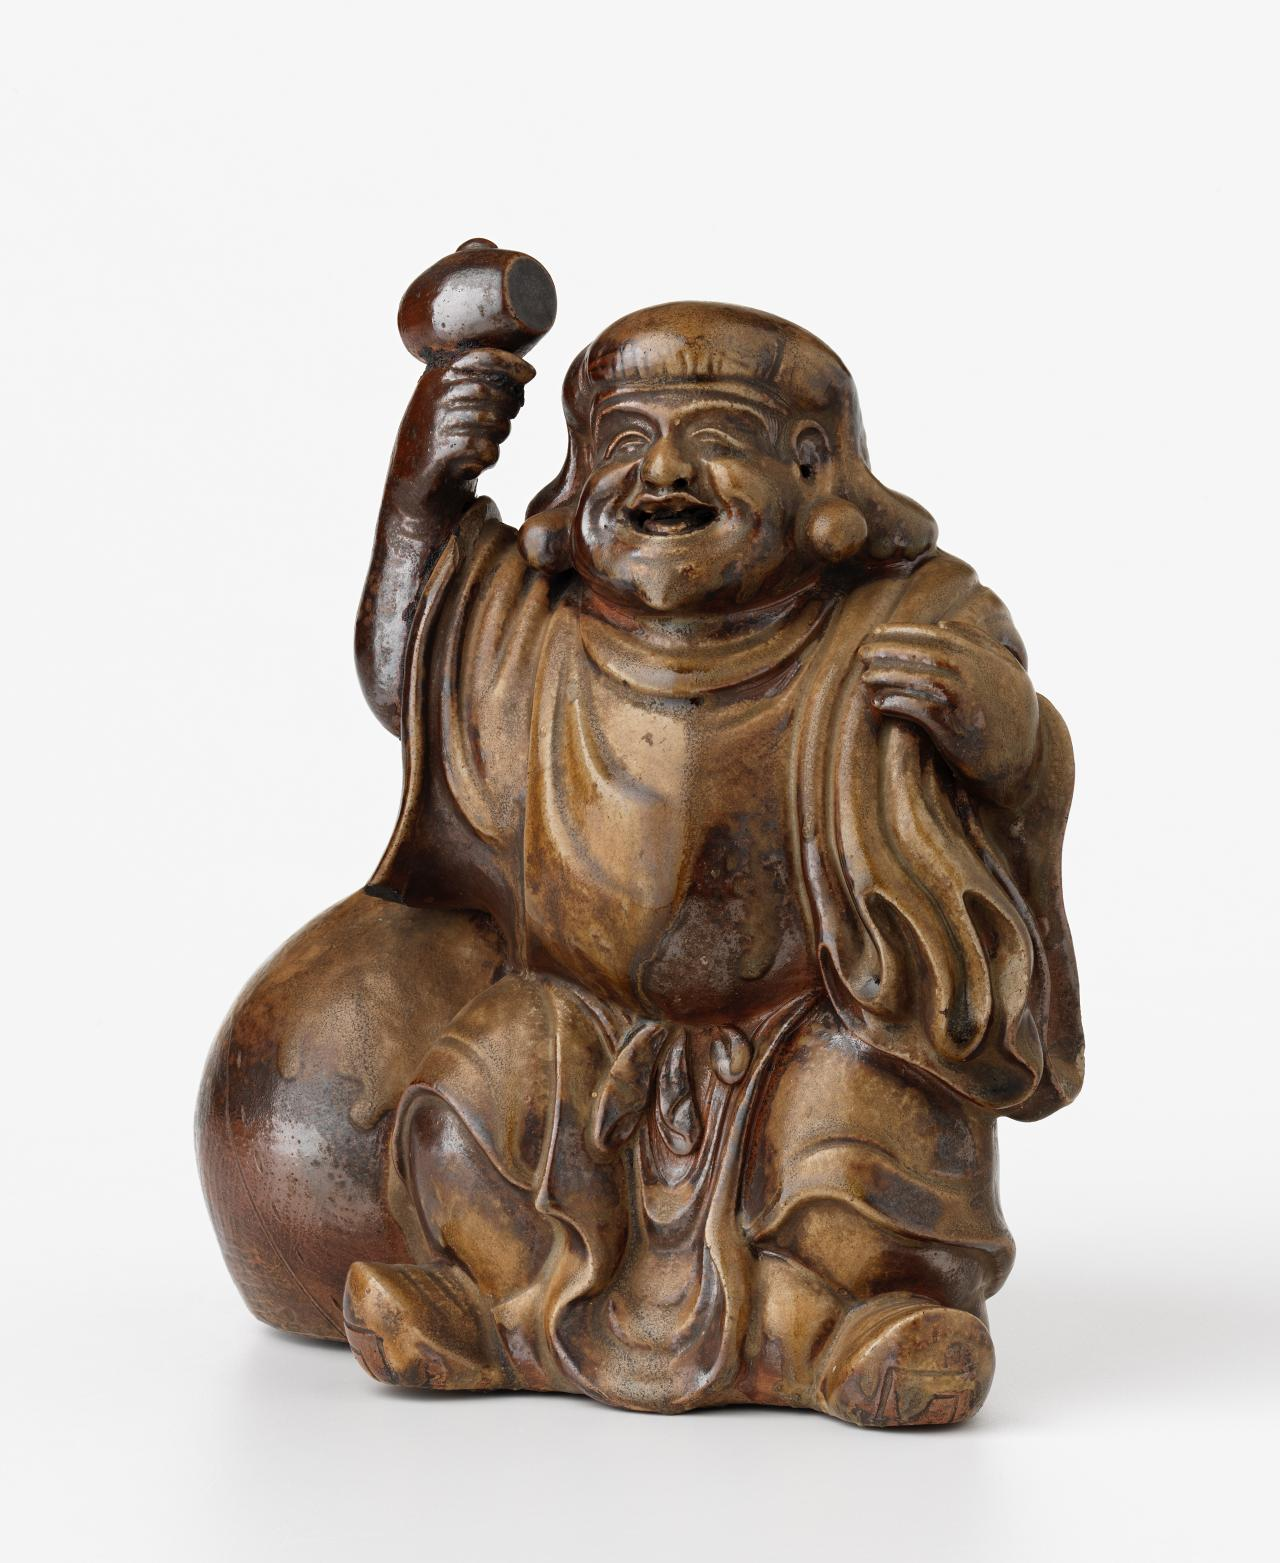 Daikoku, the lucky god of harvest, wealth and prosperity